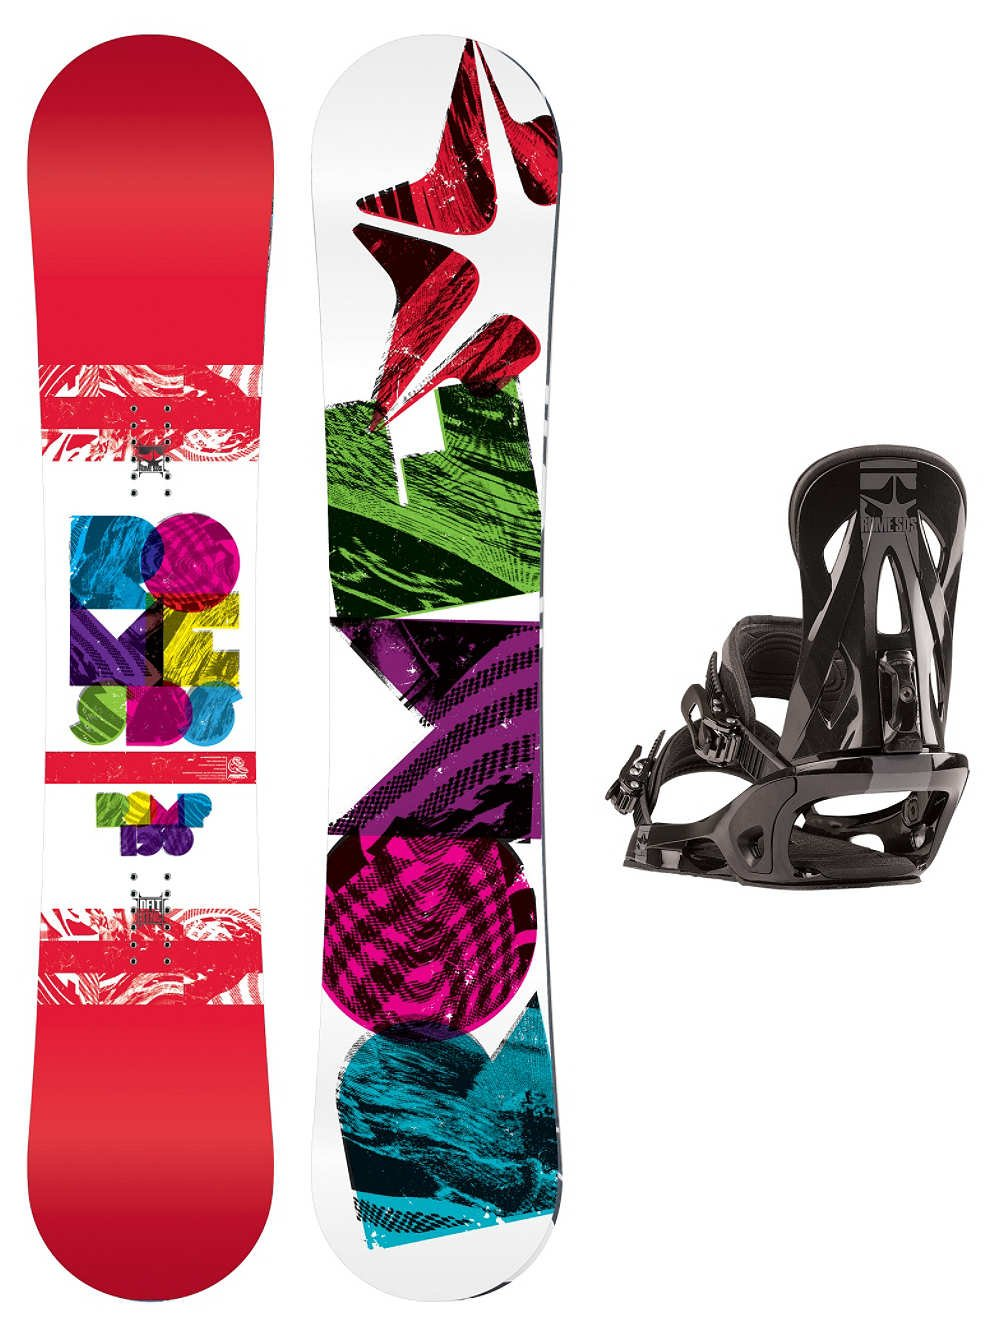 69bebe6b5 Rome Freestyle Snowboard Set Women Romp 150 + Shift M black Women:  Amazon.co.uk: Sports & Outdoors